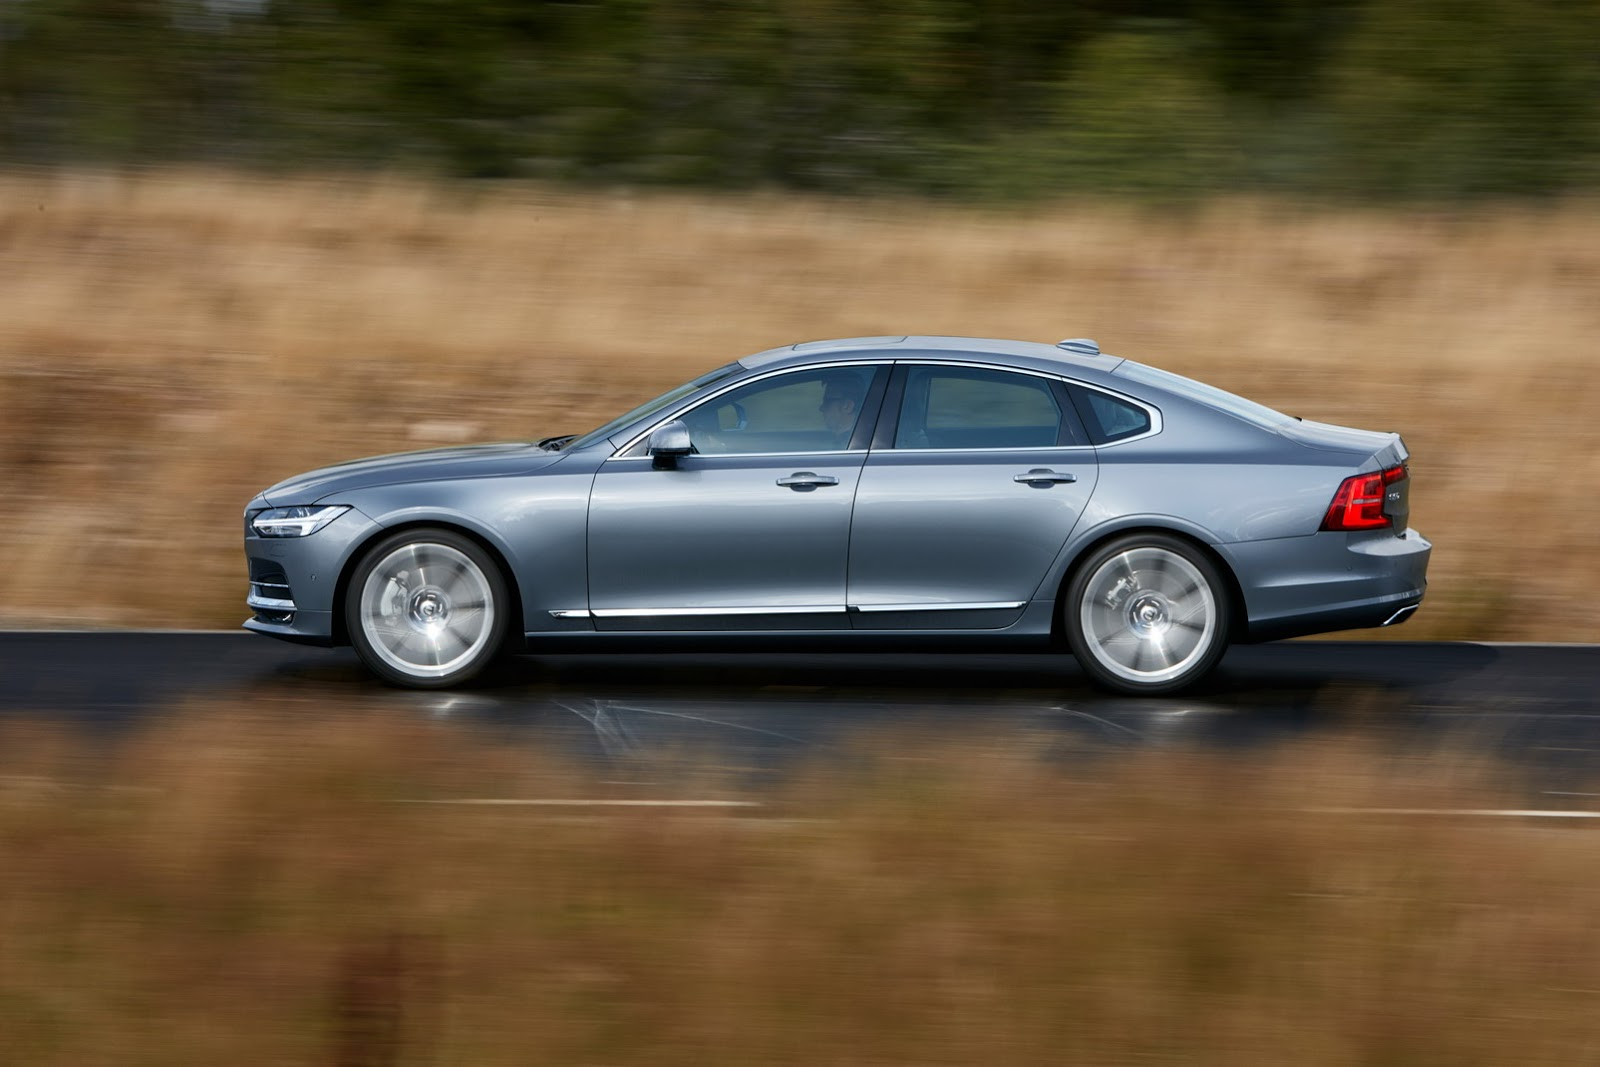 But even before the s90 launched volvo registered its best ever sales month in november and even though the nicely aging xc60 continues to sell quite well